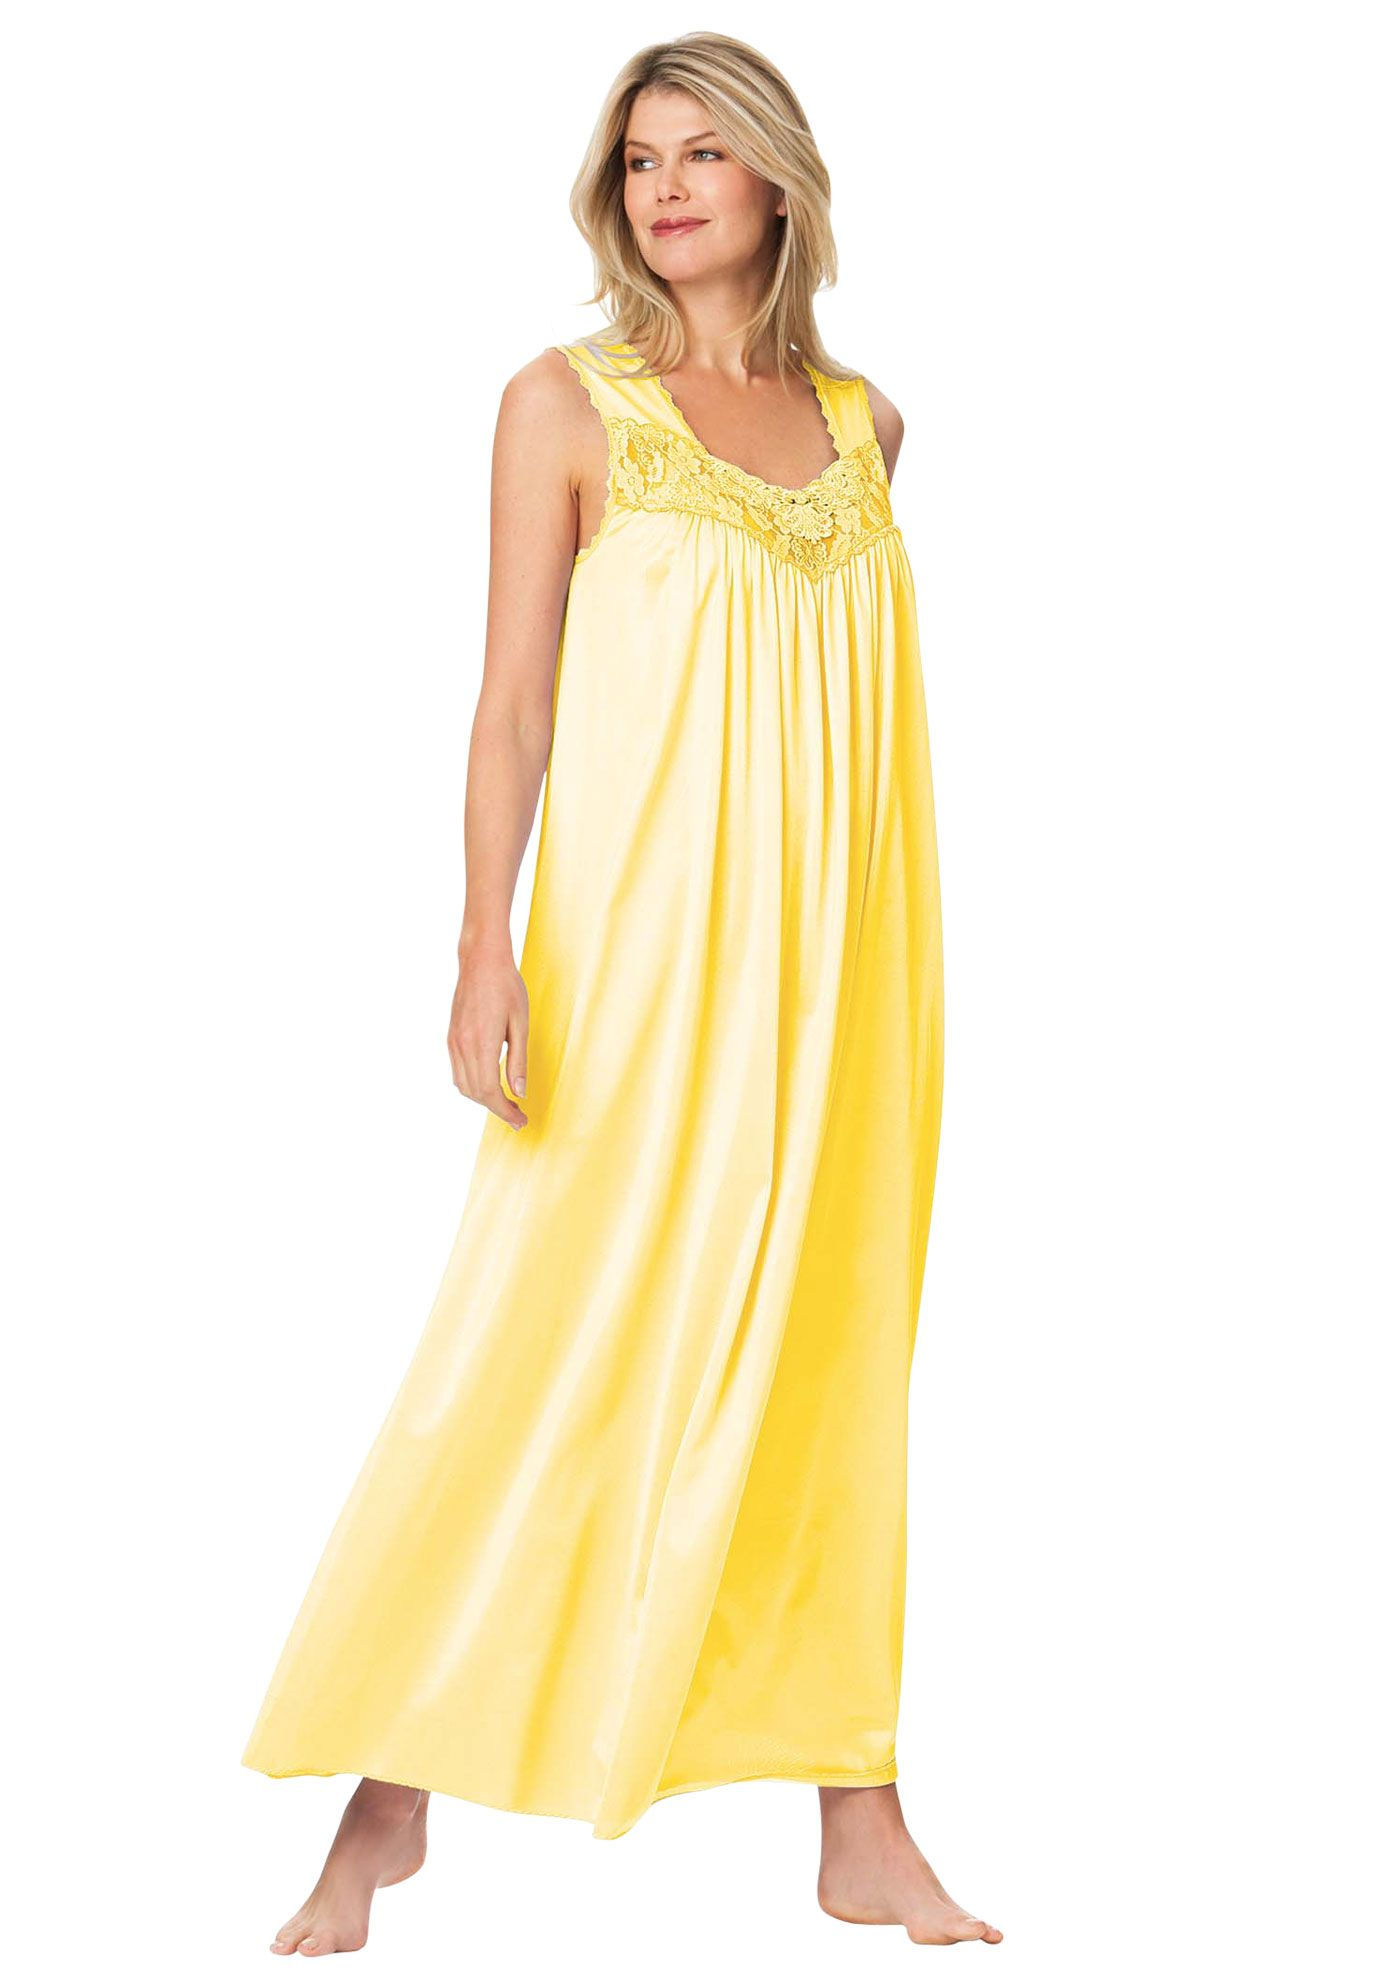 Sleep Gown By Only Necessities Nightgowns For Women Night Gown Knit Gown